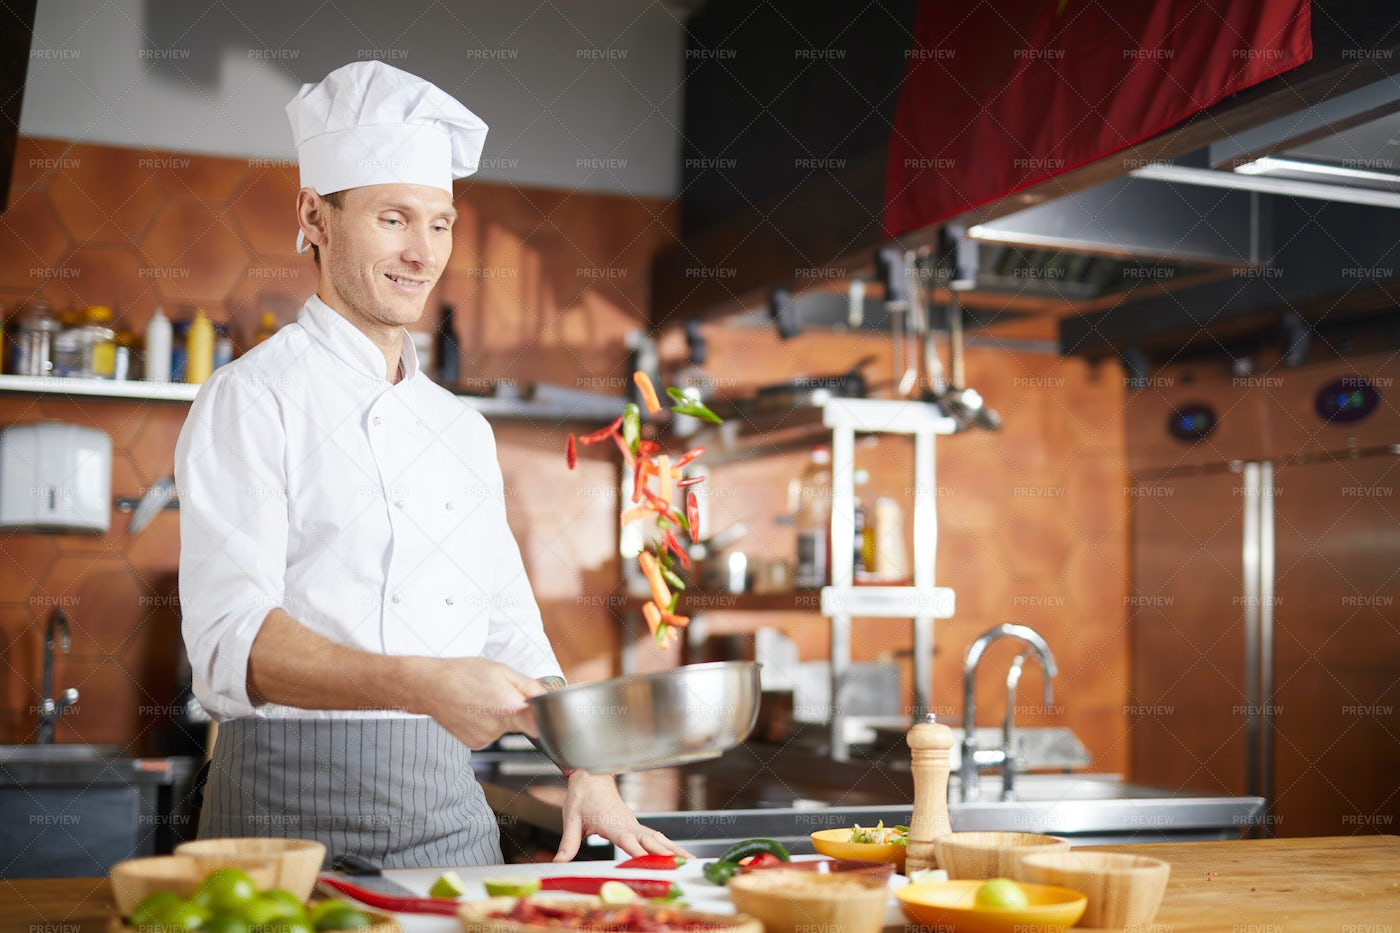 Handsome Chef Cooking Vegetables: Stock Photos